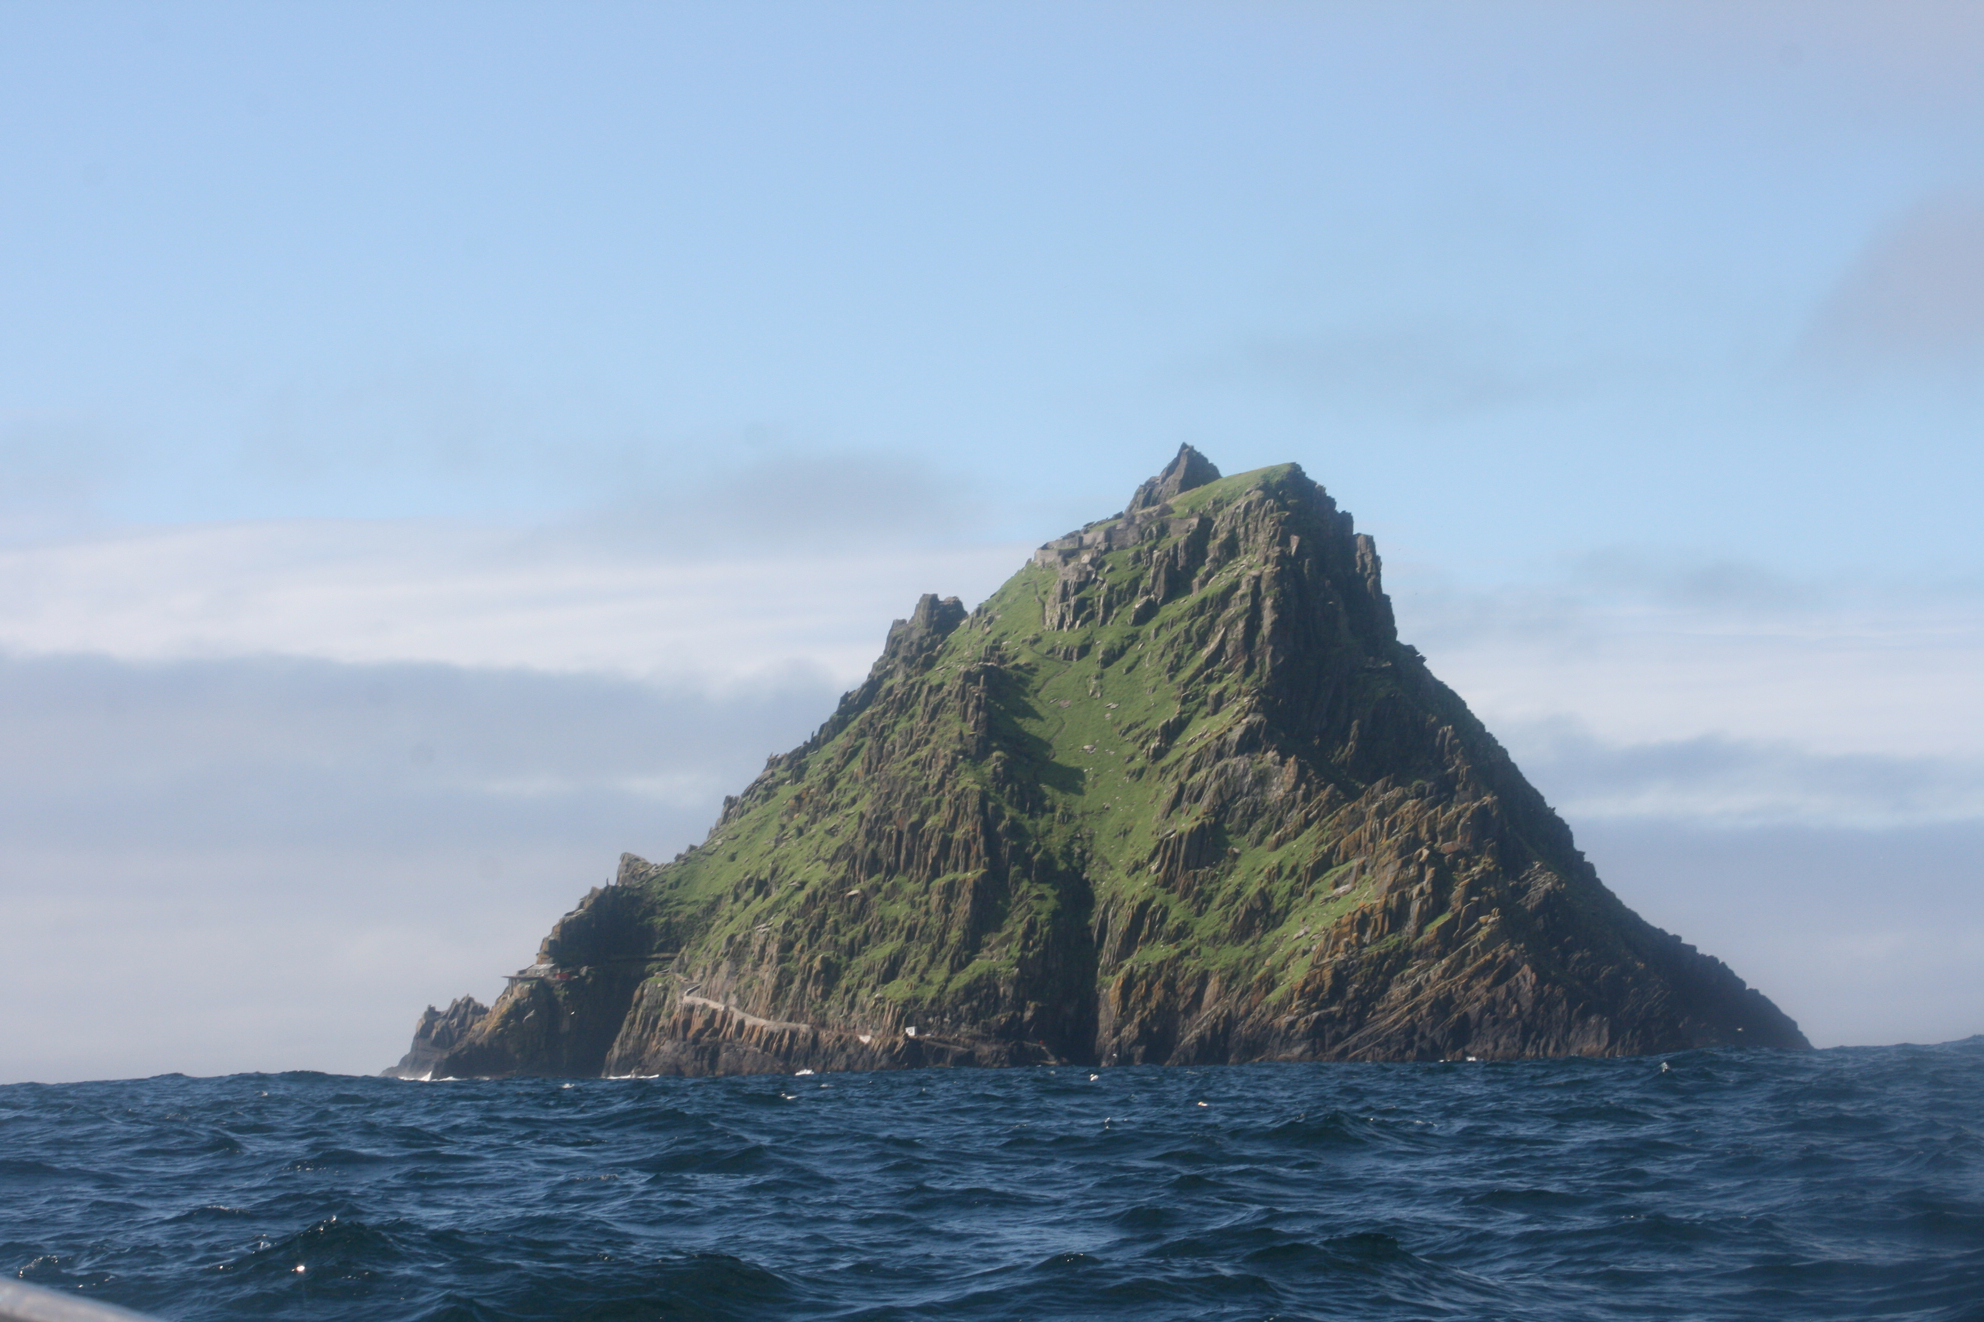 Approaching Skellig Michael by boat. Skellig Michael is a UNESCO World Heritage Site and the 12th century monastic settlement and views continue to inspire and inform Donagh Carey's paintings.